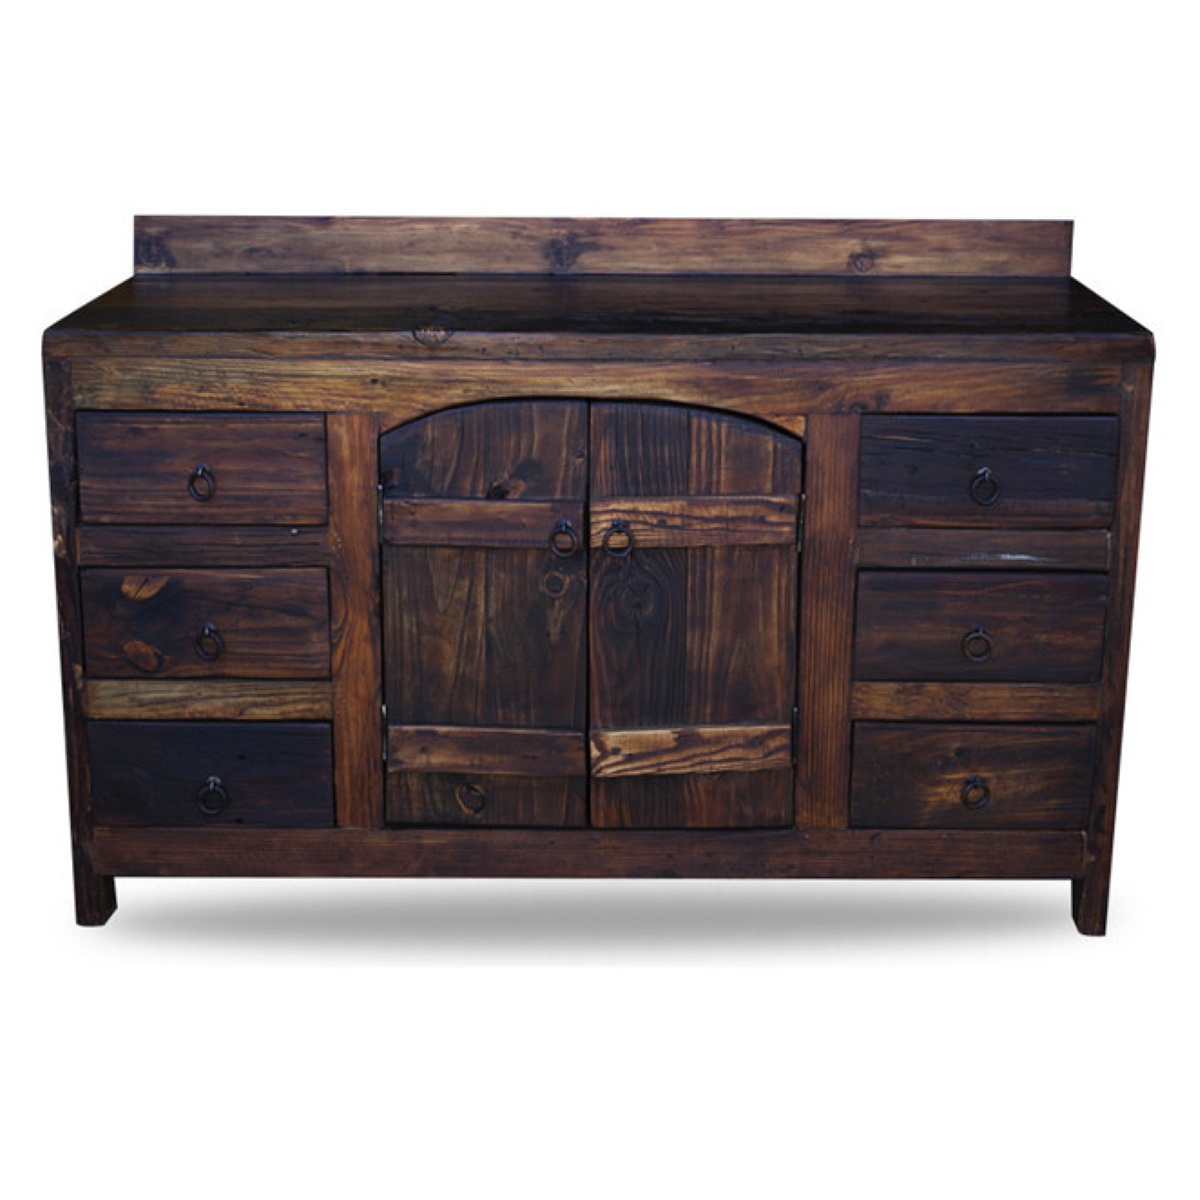 Old World Vanity from Reclaimed wood 43421 - Buy Rustic Handcrafted Home Decor Products In Texas Custom